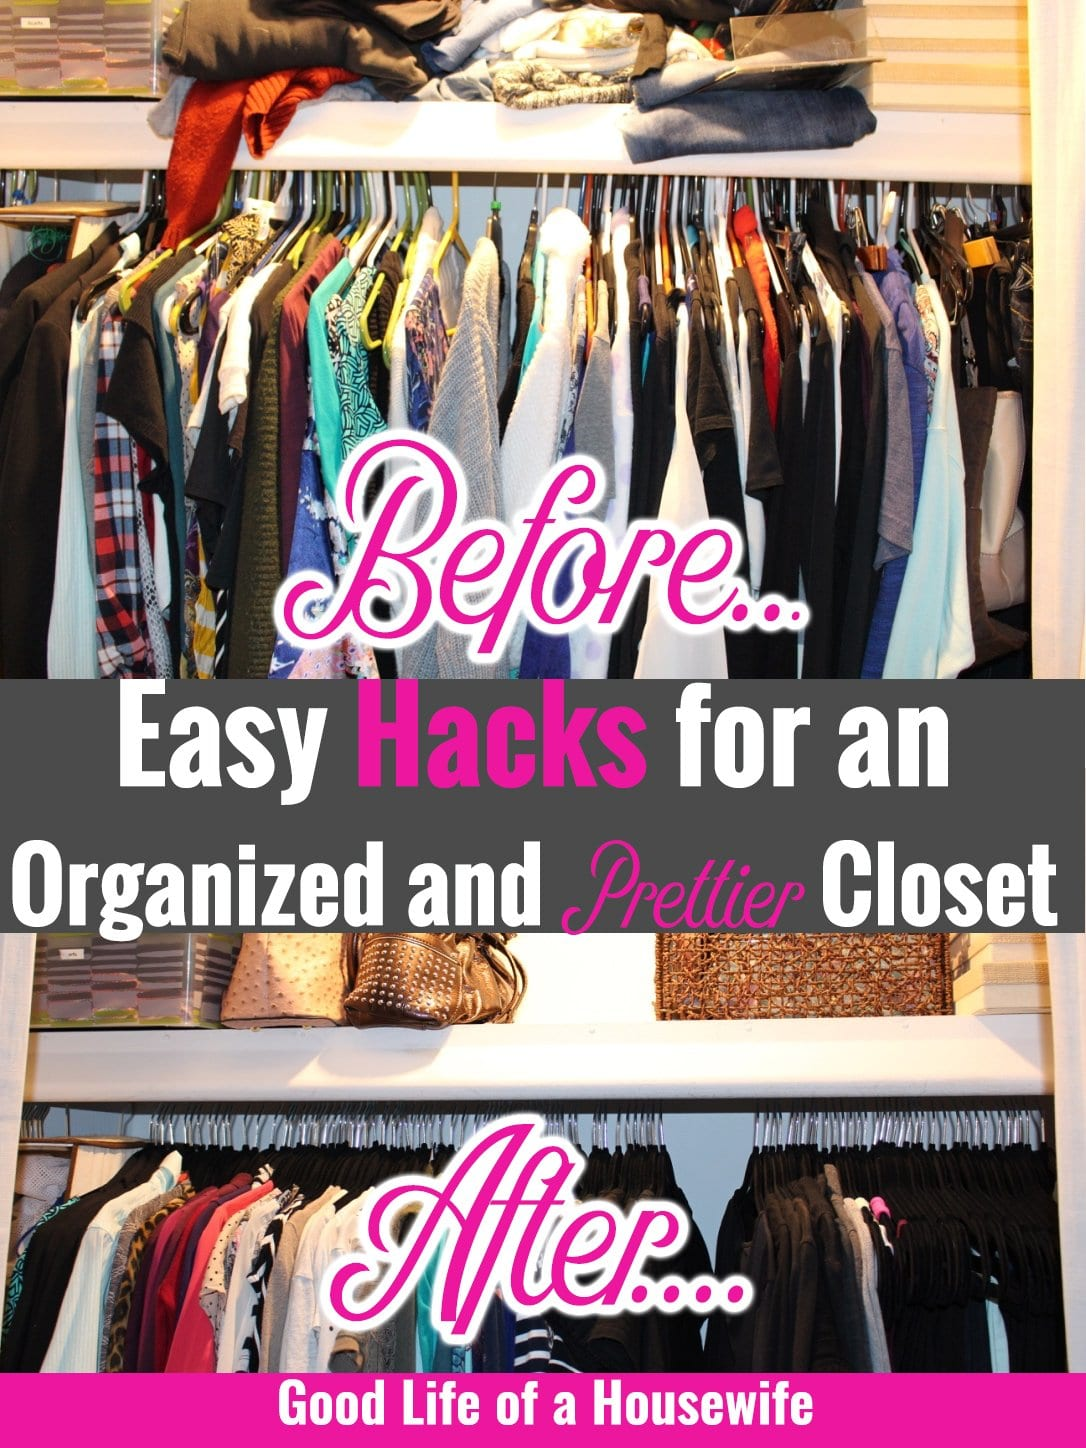 Easy Hacks for an organized and prettier closet